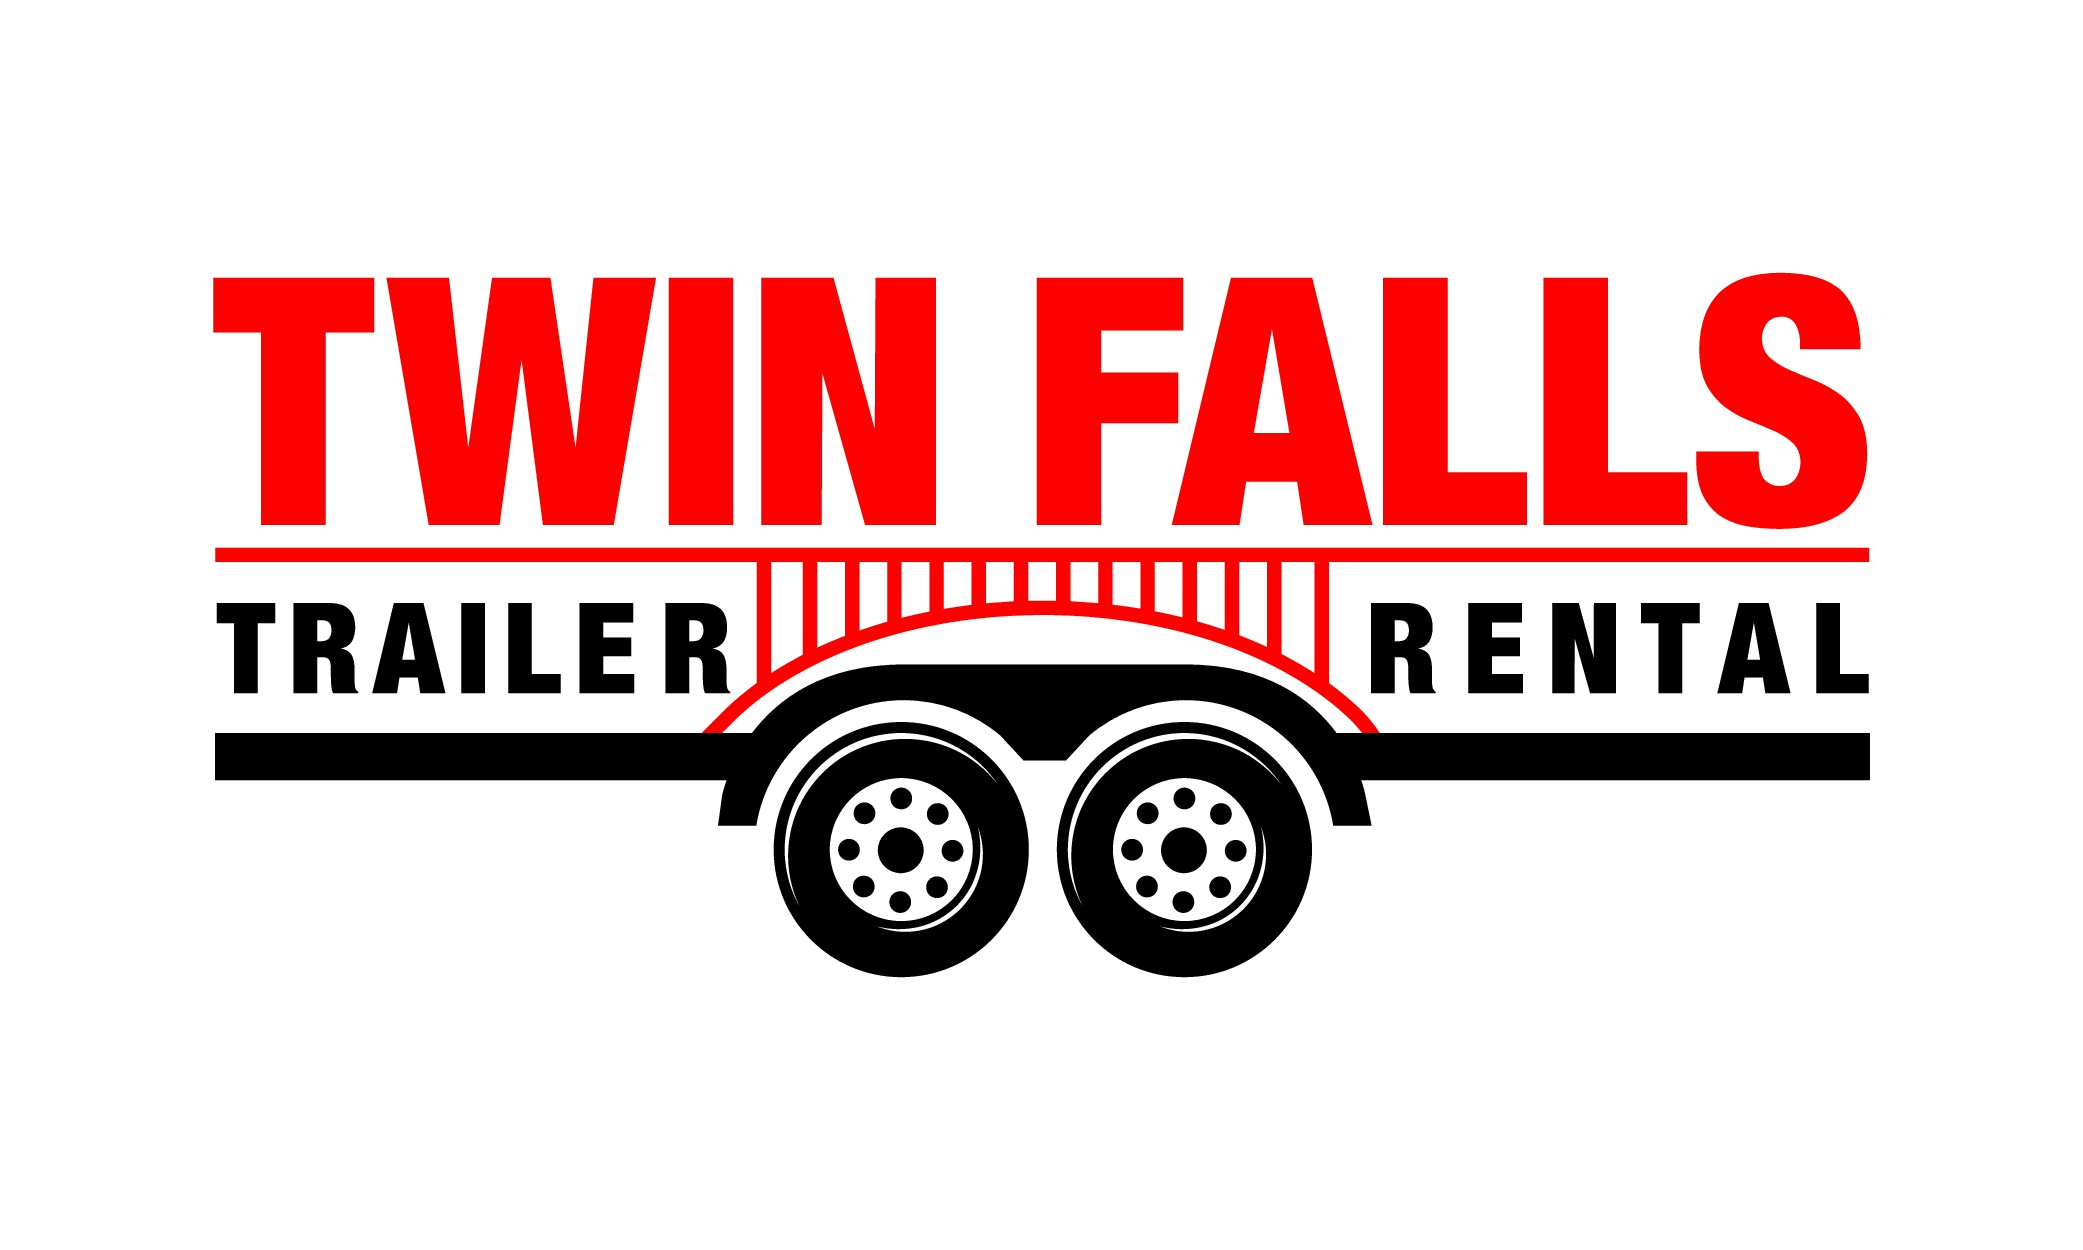 Help create a logo for the largest trailer rental store in the Western United States!